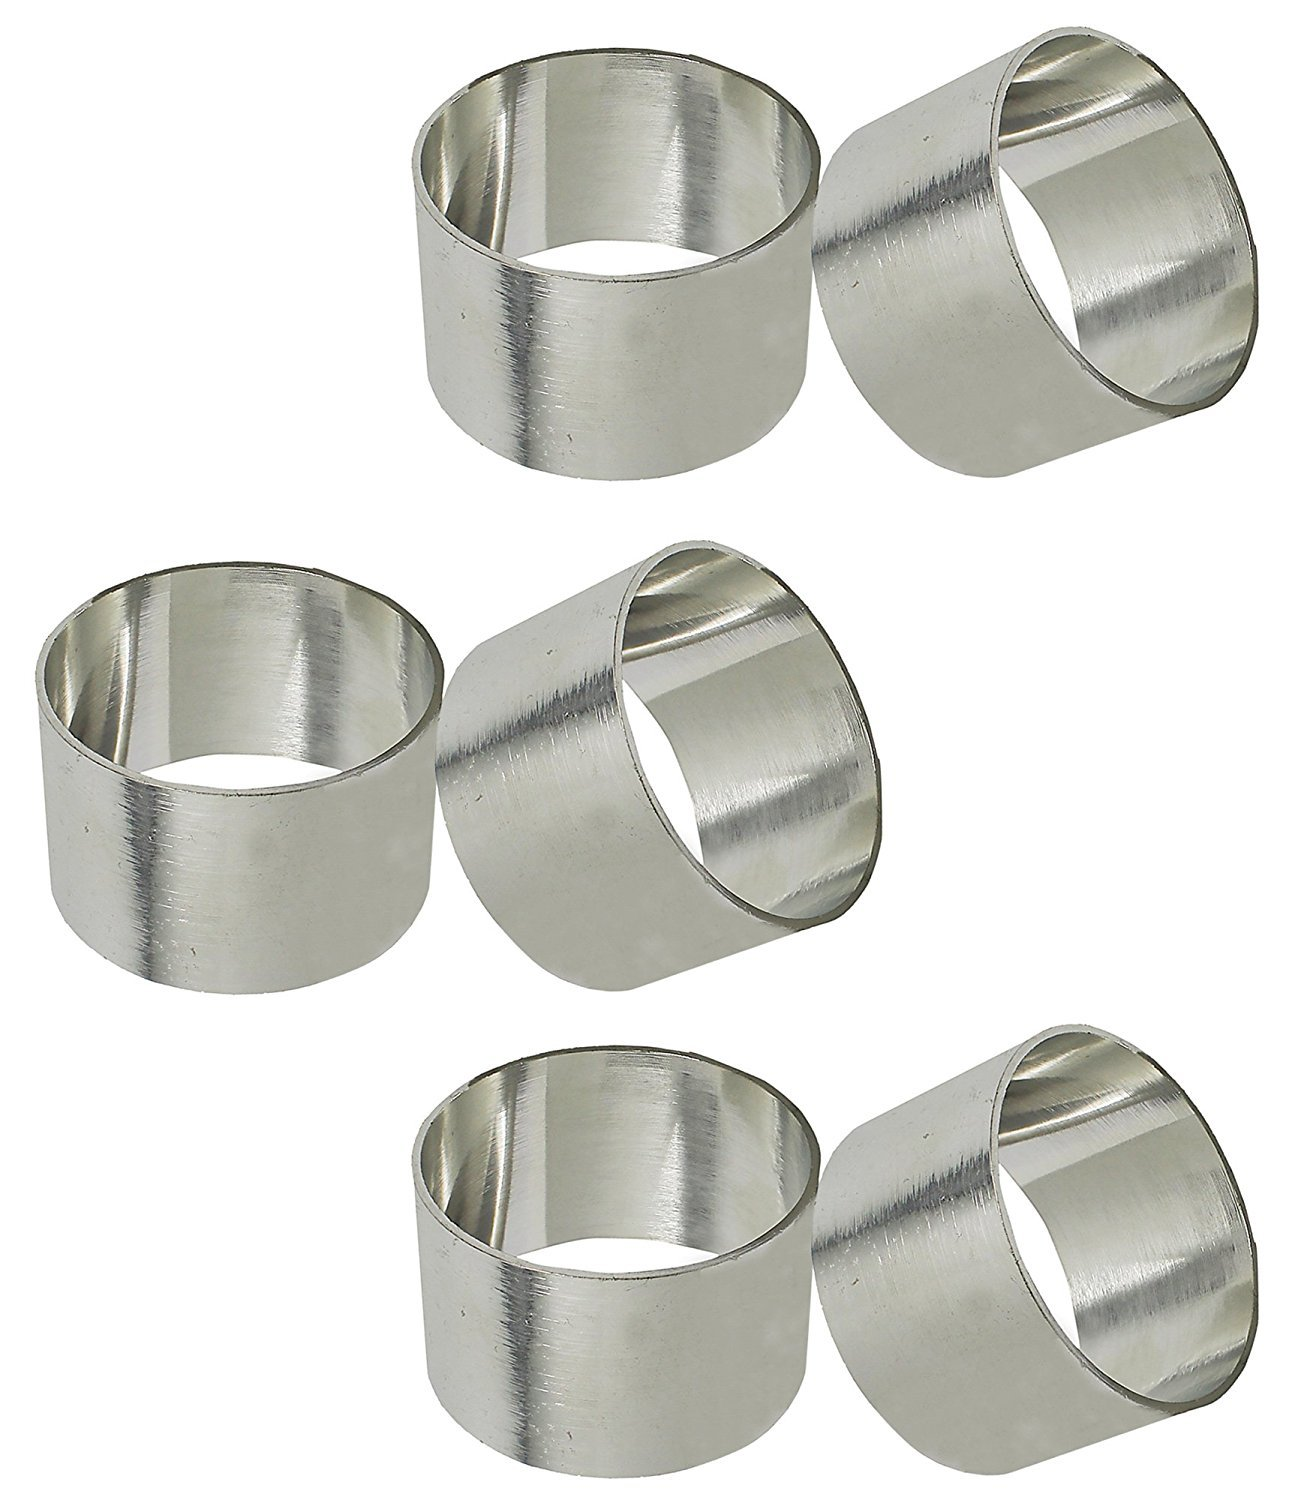 worldexplorer Basic Everyday Napkin Rings for Place Settings, Wedding Receptions, Dinner or Holiday Parties, Family Gatherings (Set of 6), Plane Silver